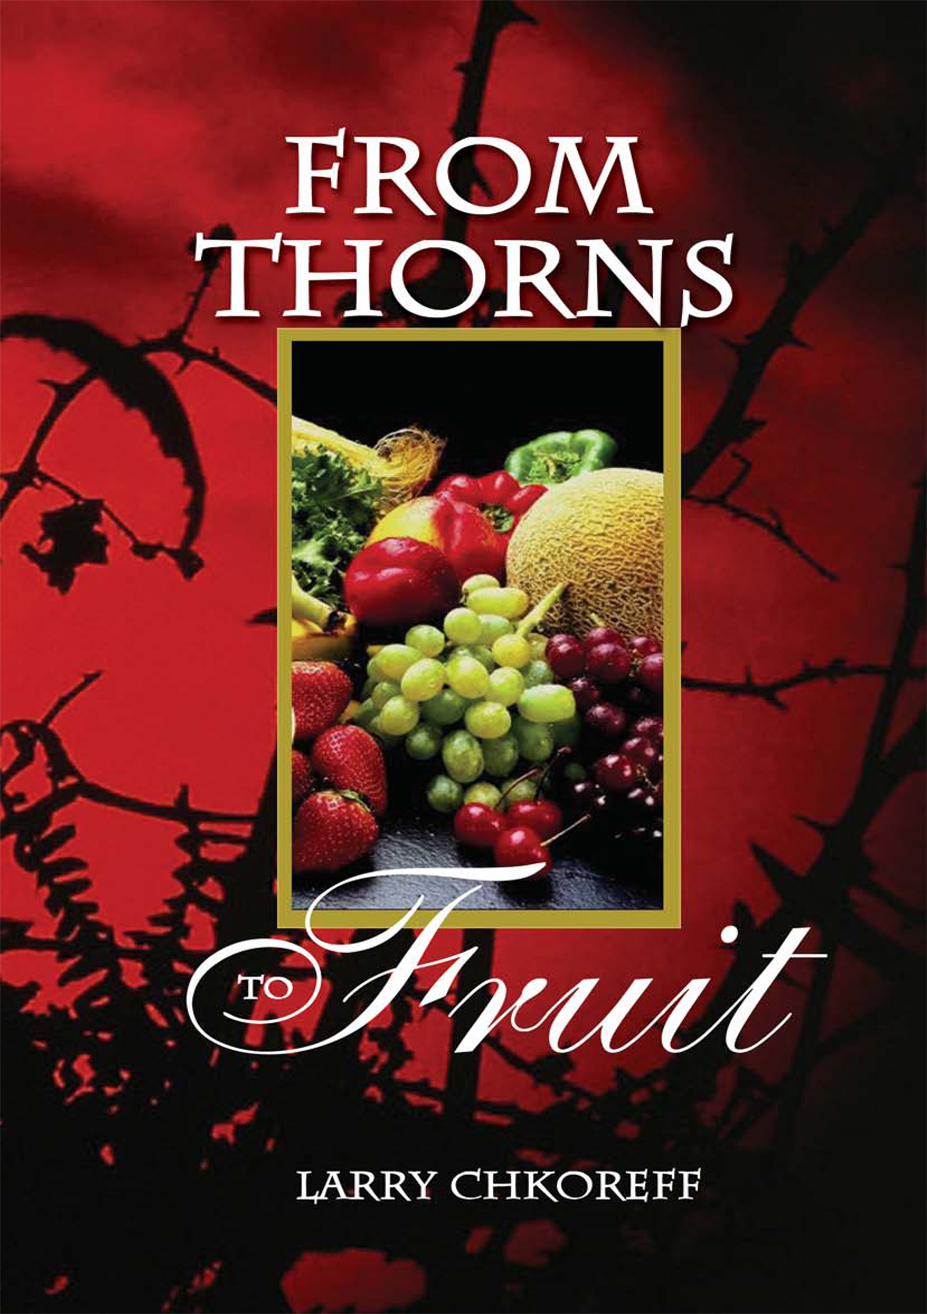 From Thorns